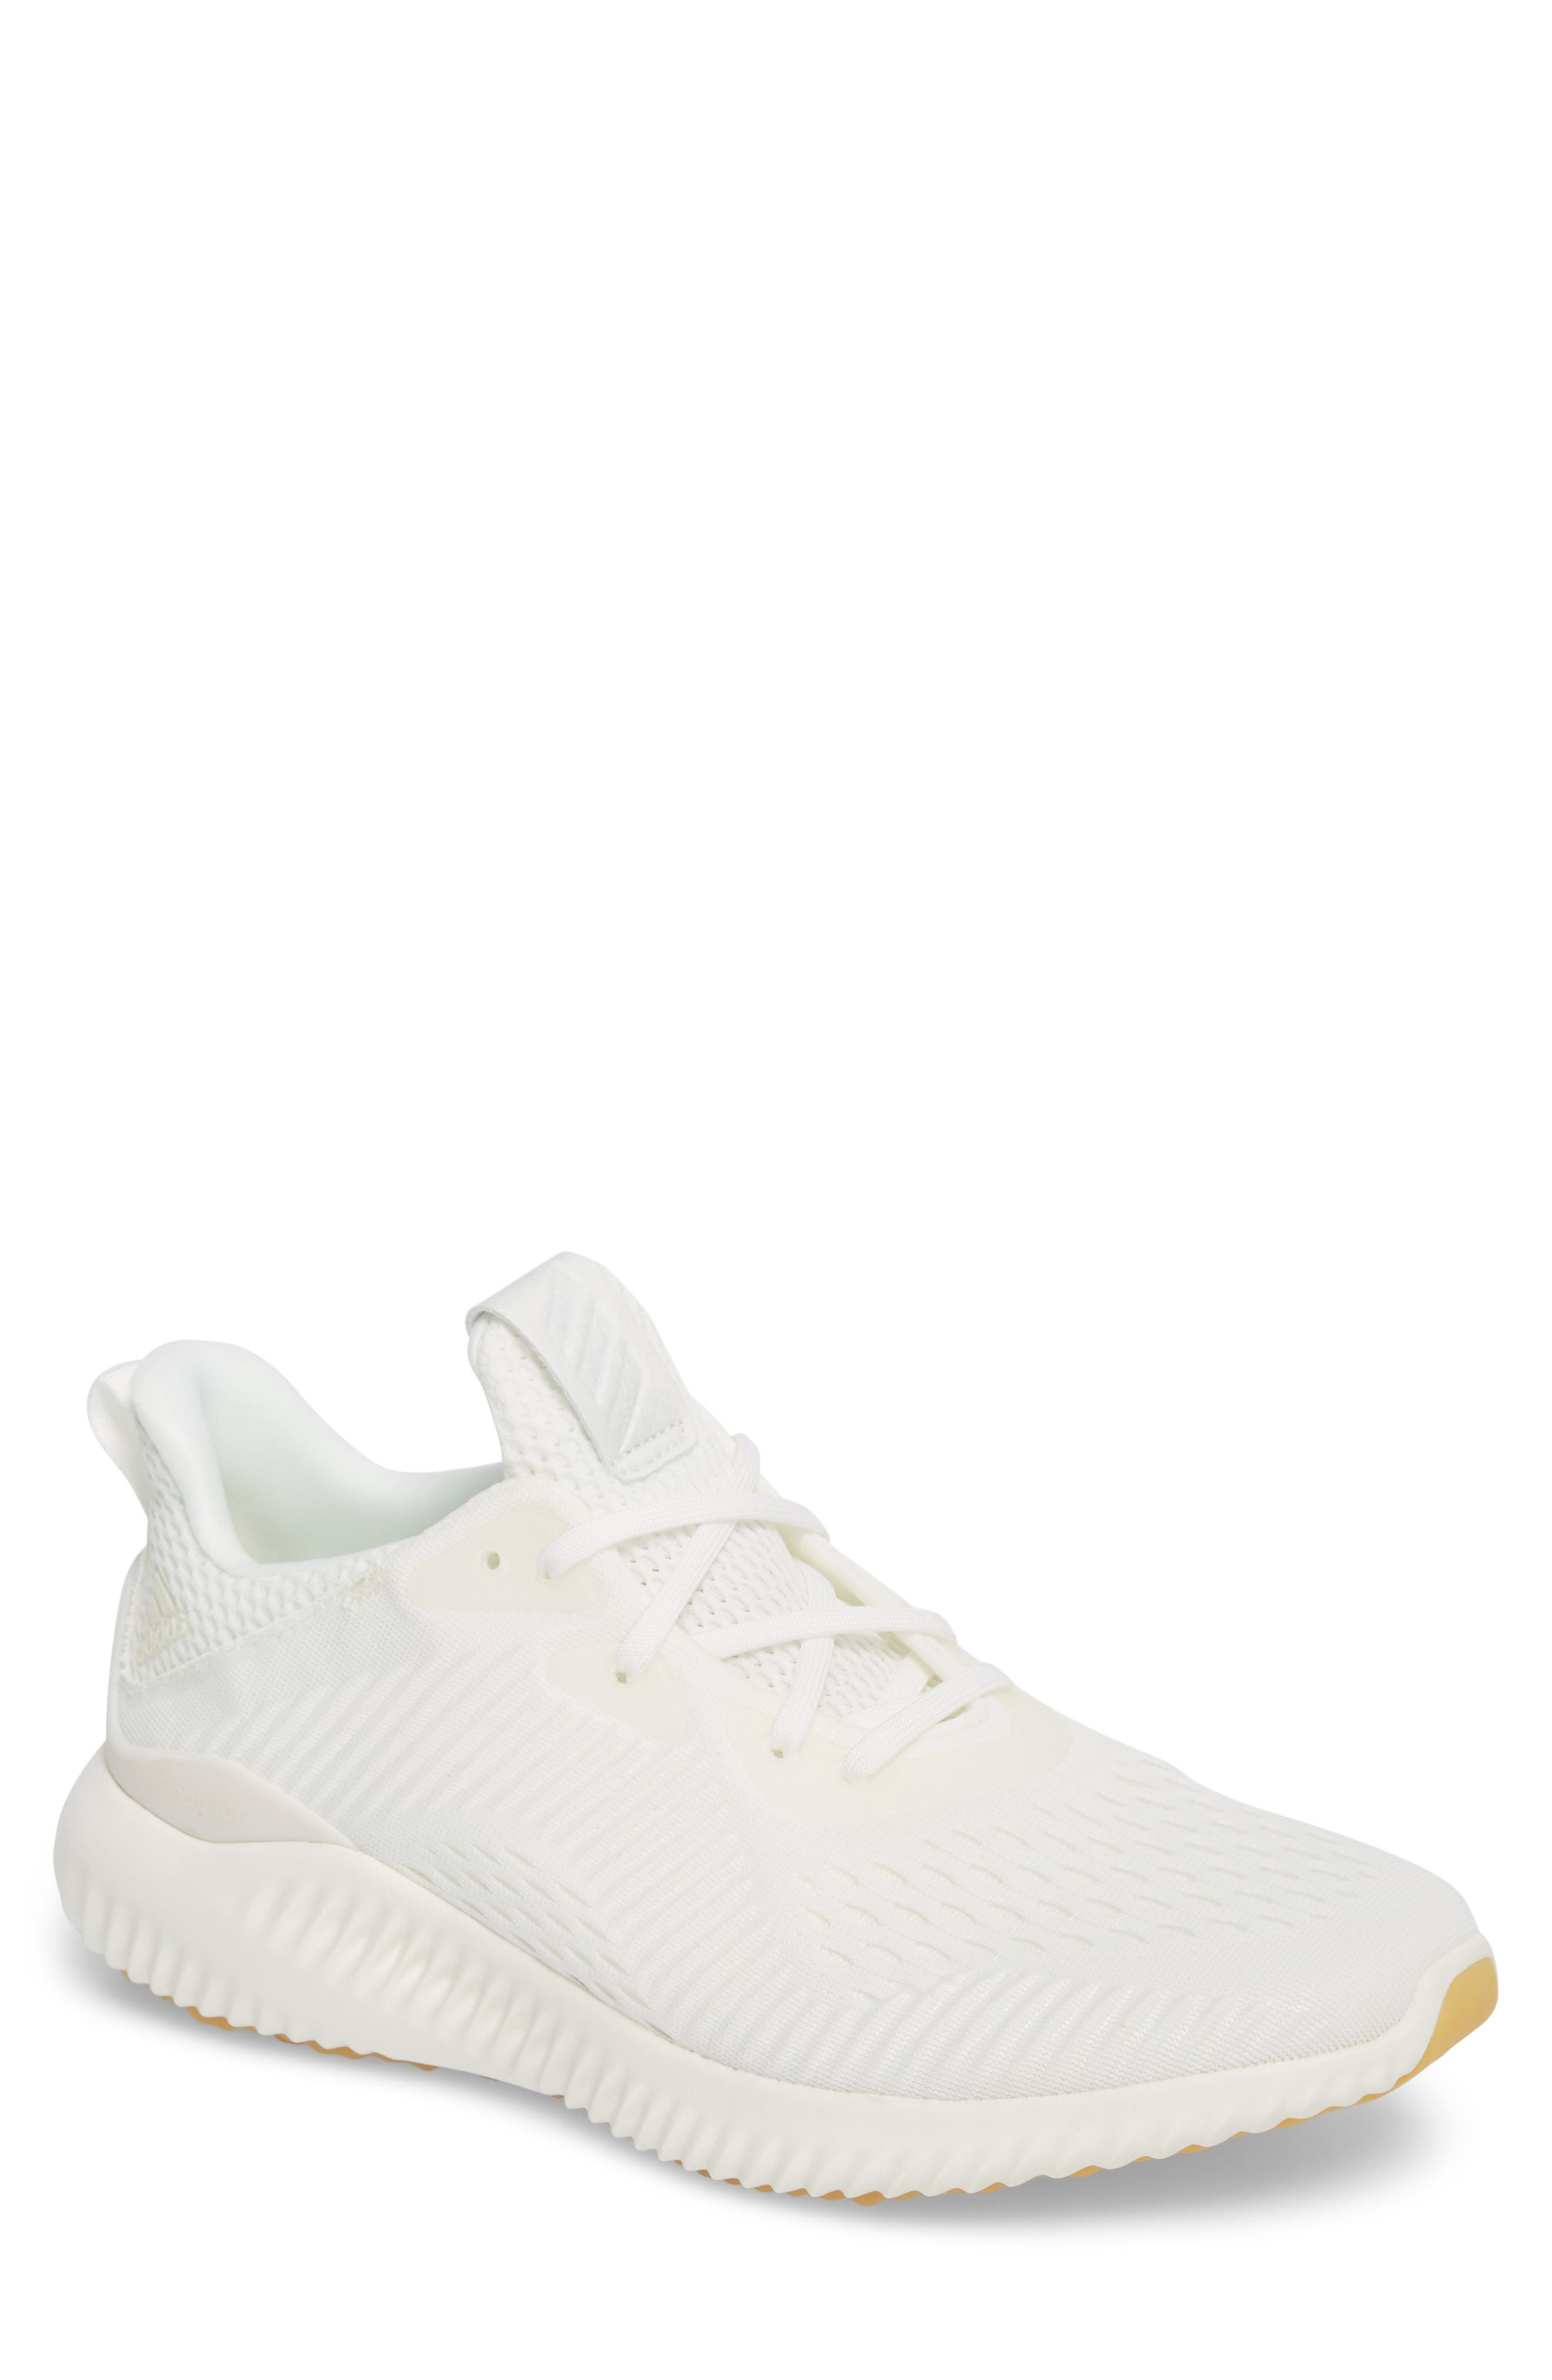 adidas AlphaBounce EM Undye Running Shoe (Men)